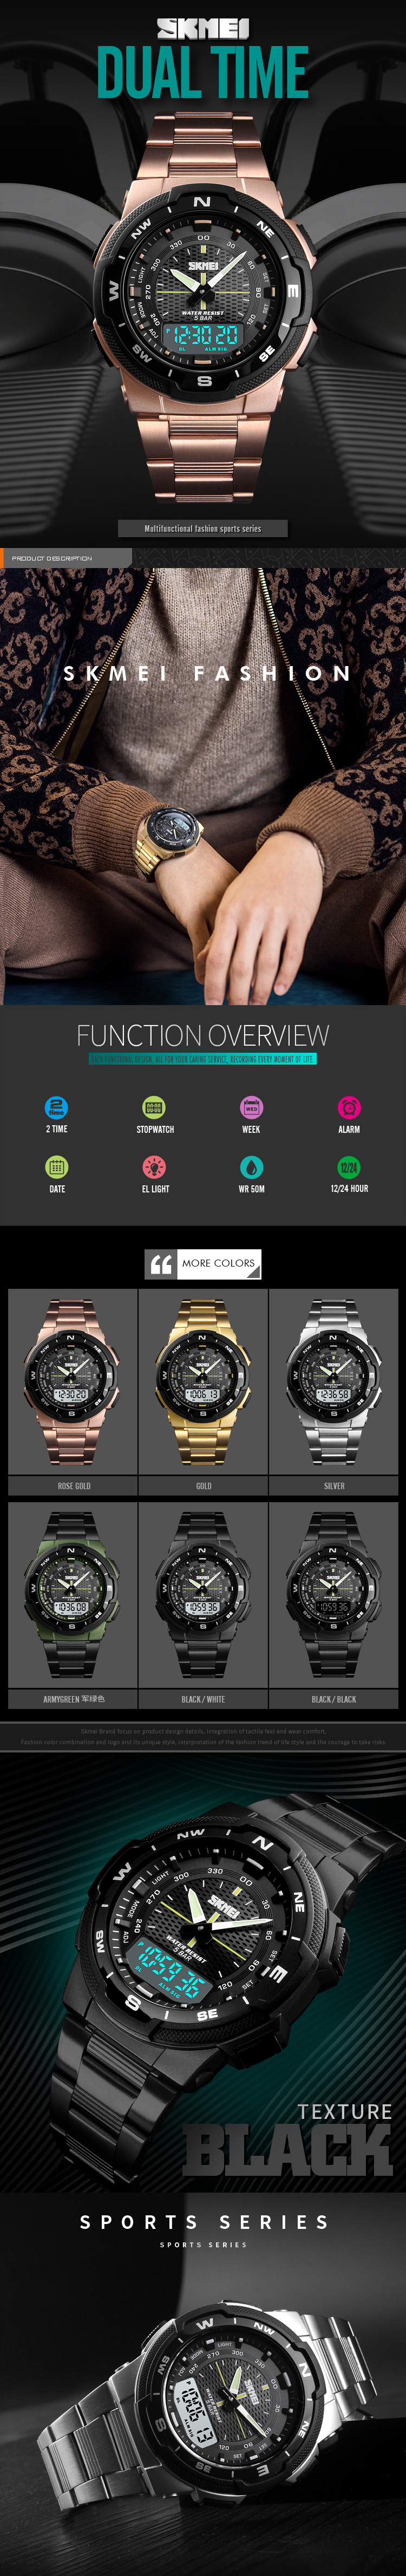 IsMyStore: Fashion SKMEI Brand Outdoor Sport Watch Men 50m Waterproof Digital Quartz Dual Time Military Sports Watches Climbing Swim Clock